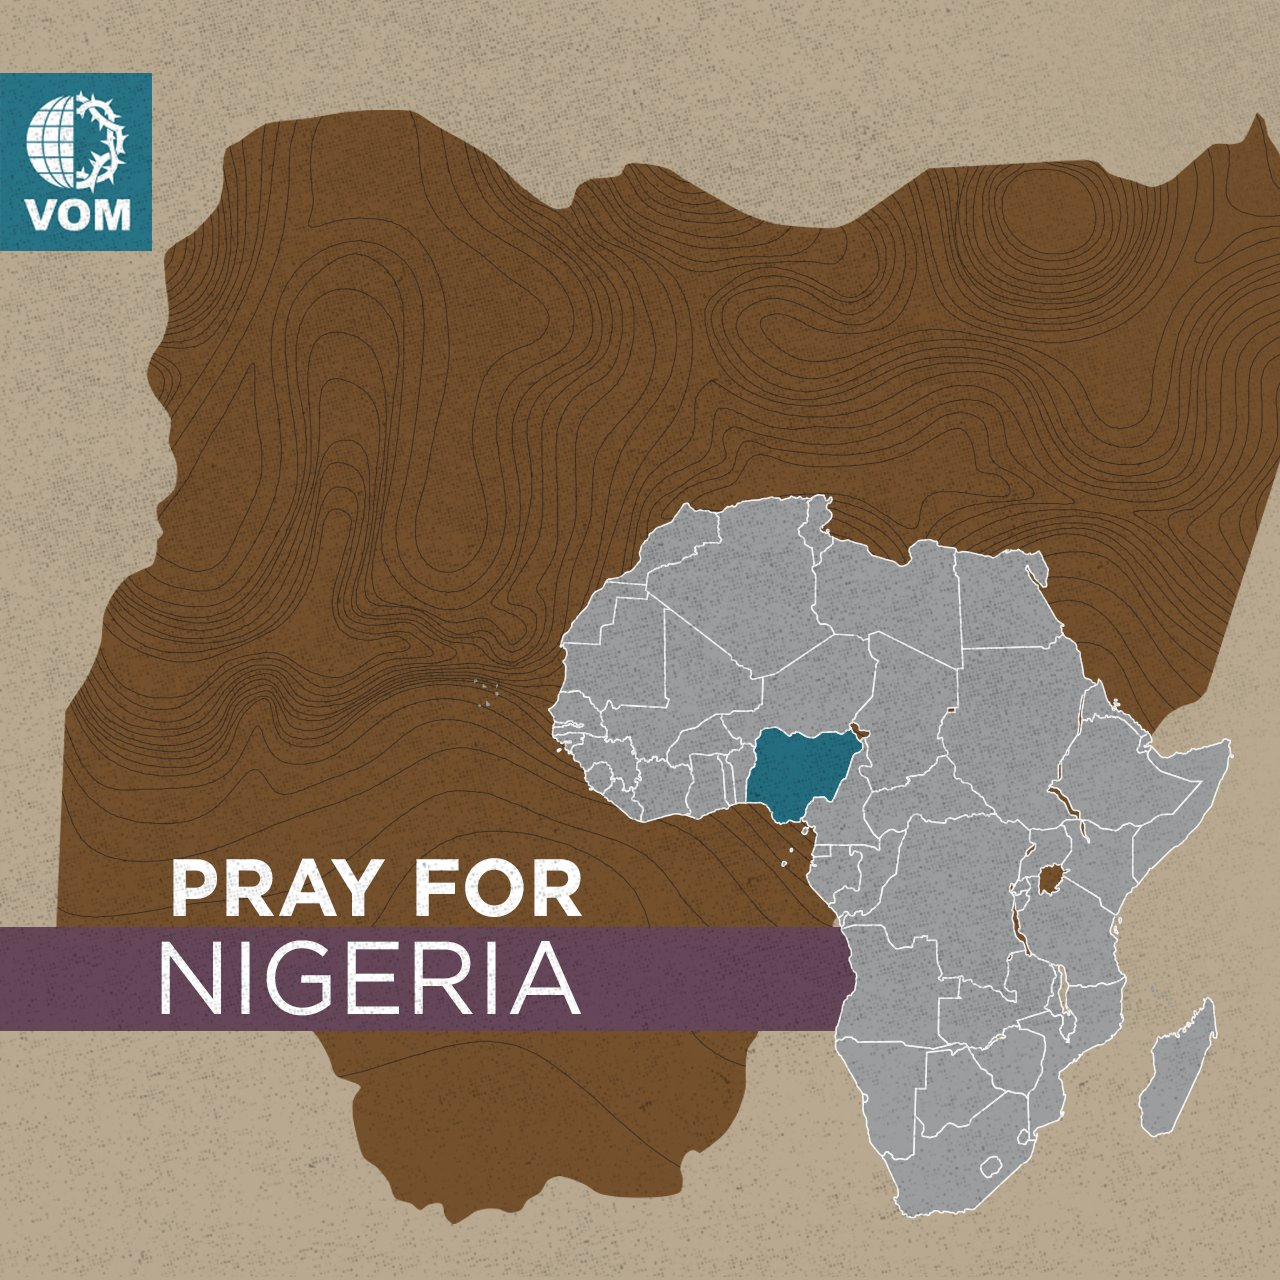 Will President Buhari's second term bring change for Christians in Nigeria?